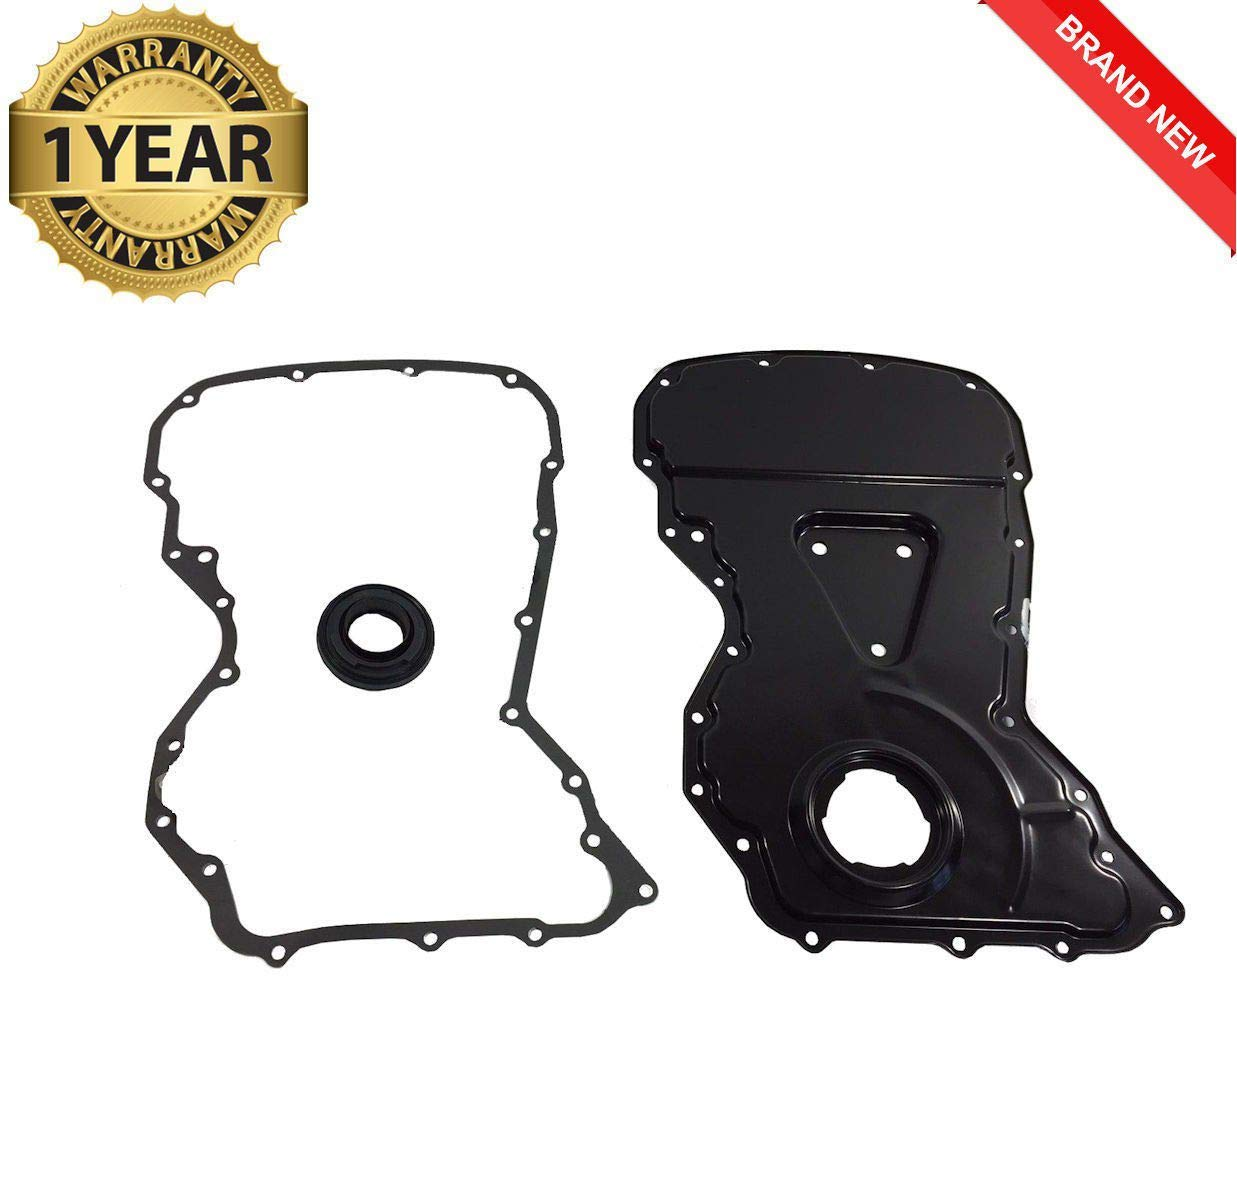 Transit Parts Transit MK7 2.2 FWD Timing Chain Front Cover Gasket Seal Relay Boxer